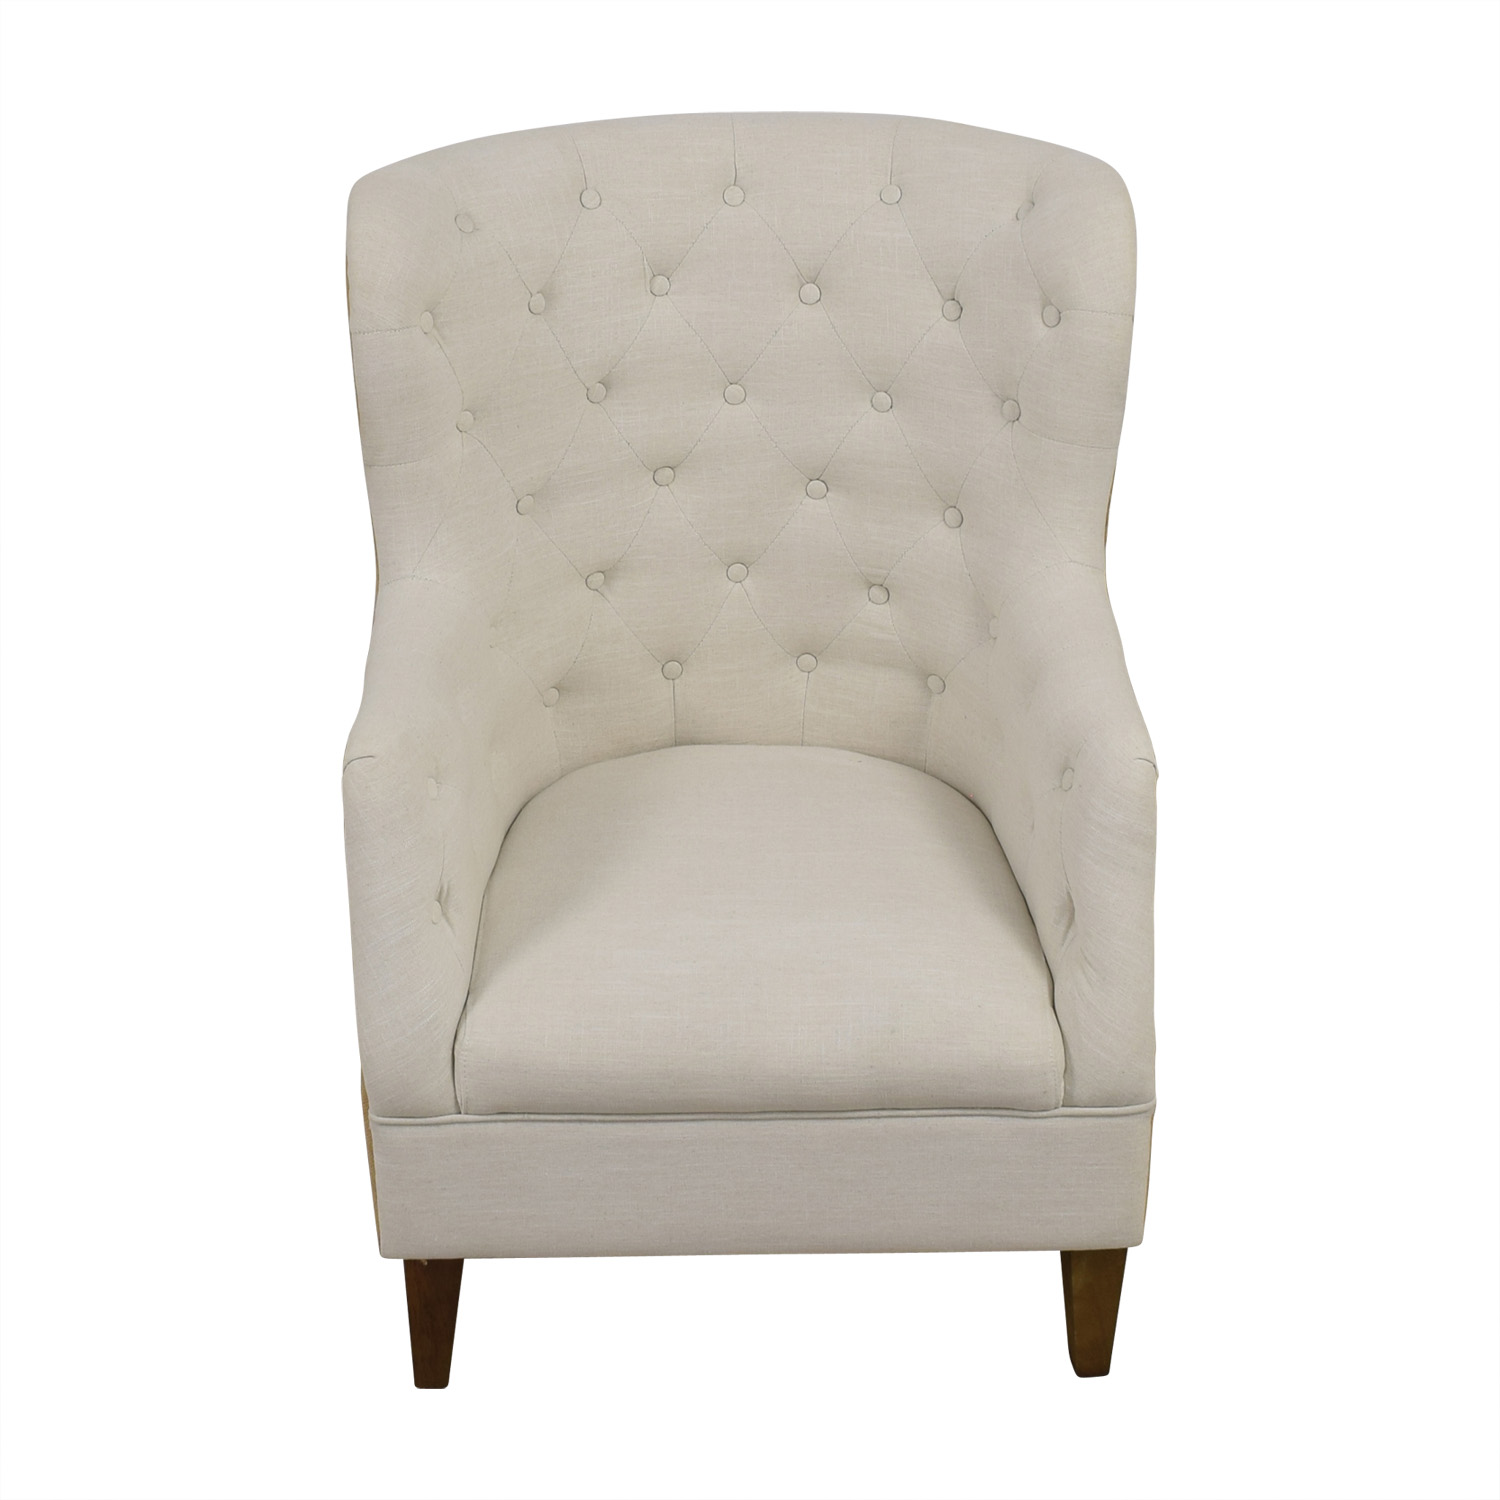 Classic Concepts Classic Concepts White Tufted and Tan Back Wing Back Accent Chair discount